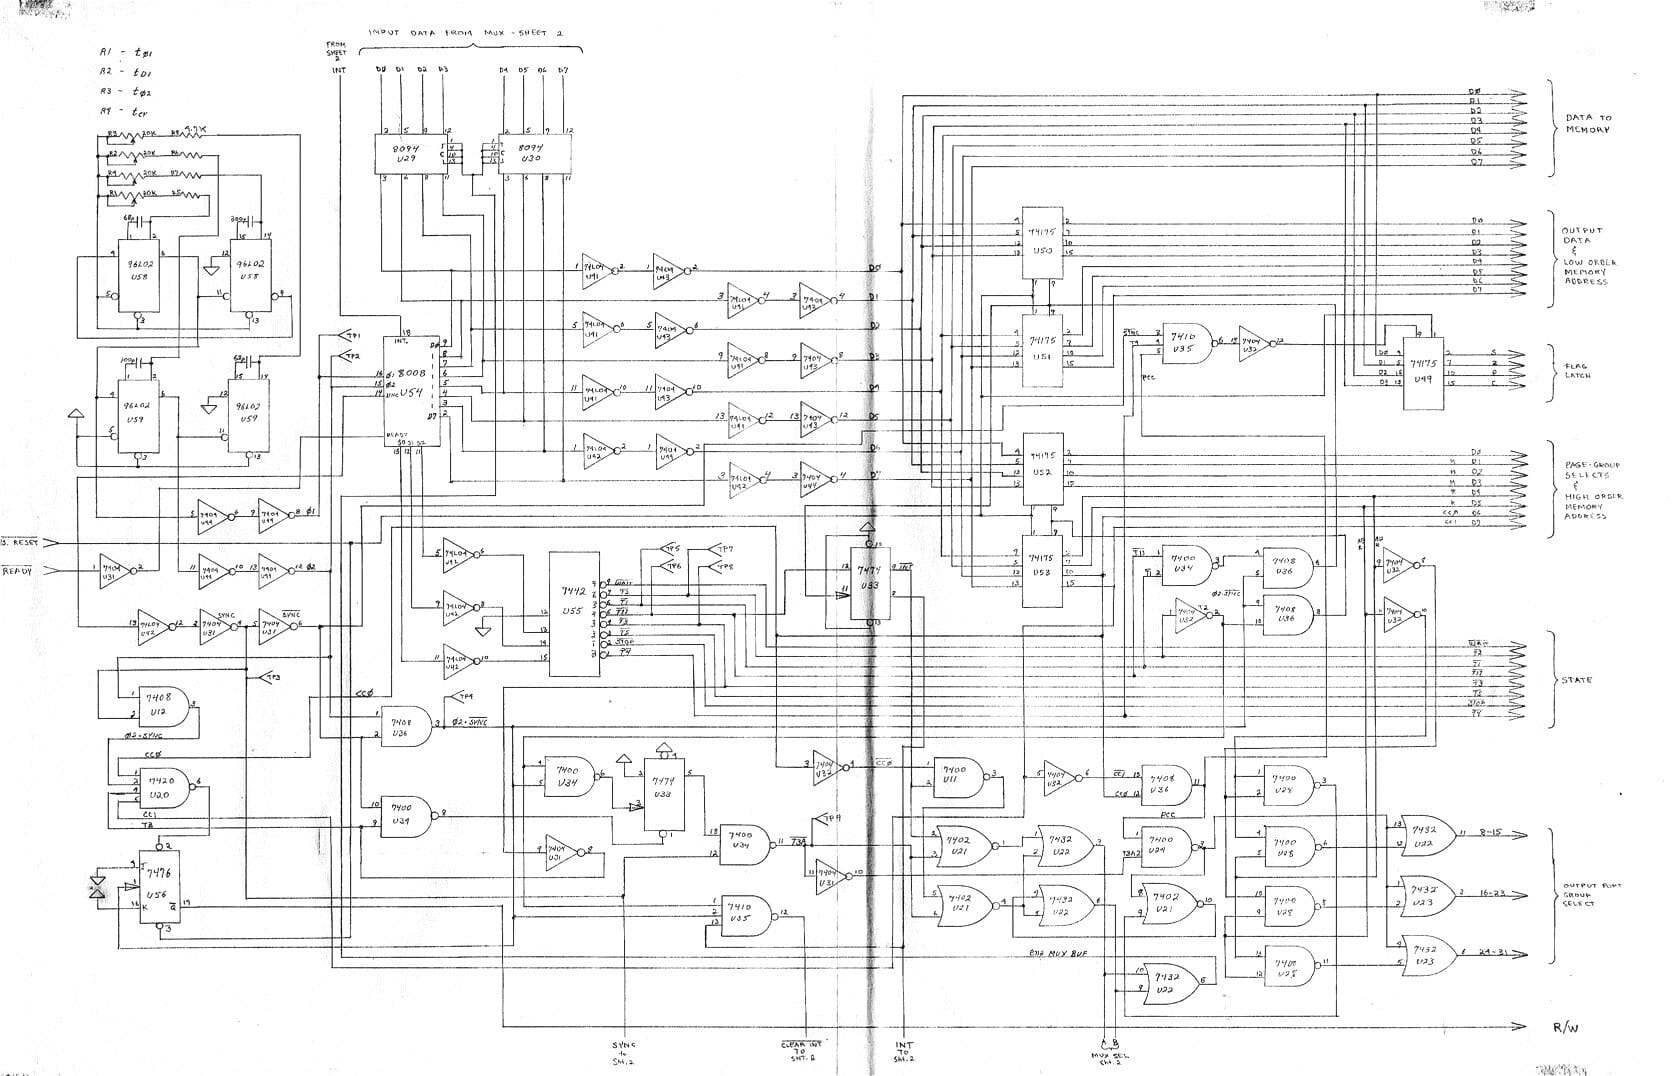 homebrew 8008 computer schematics - 1974